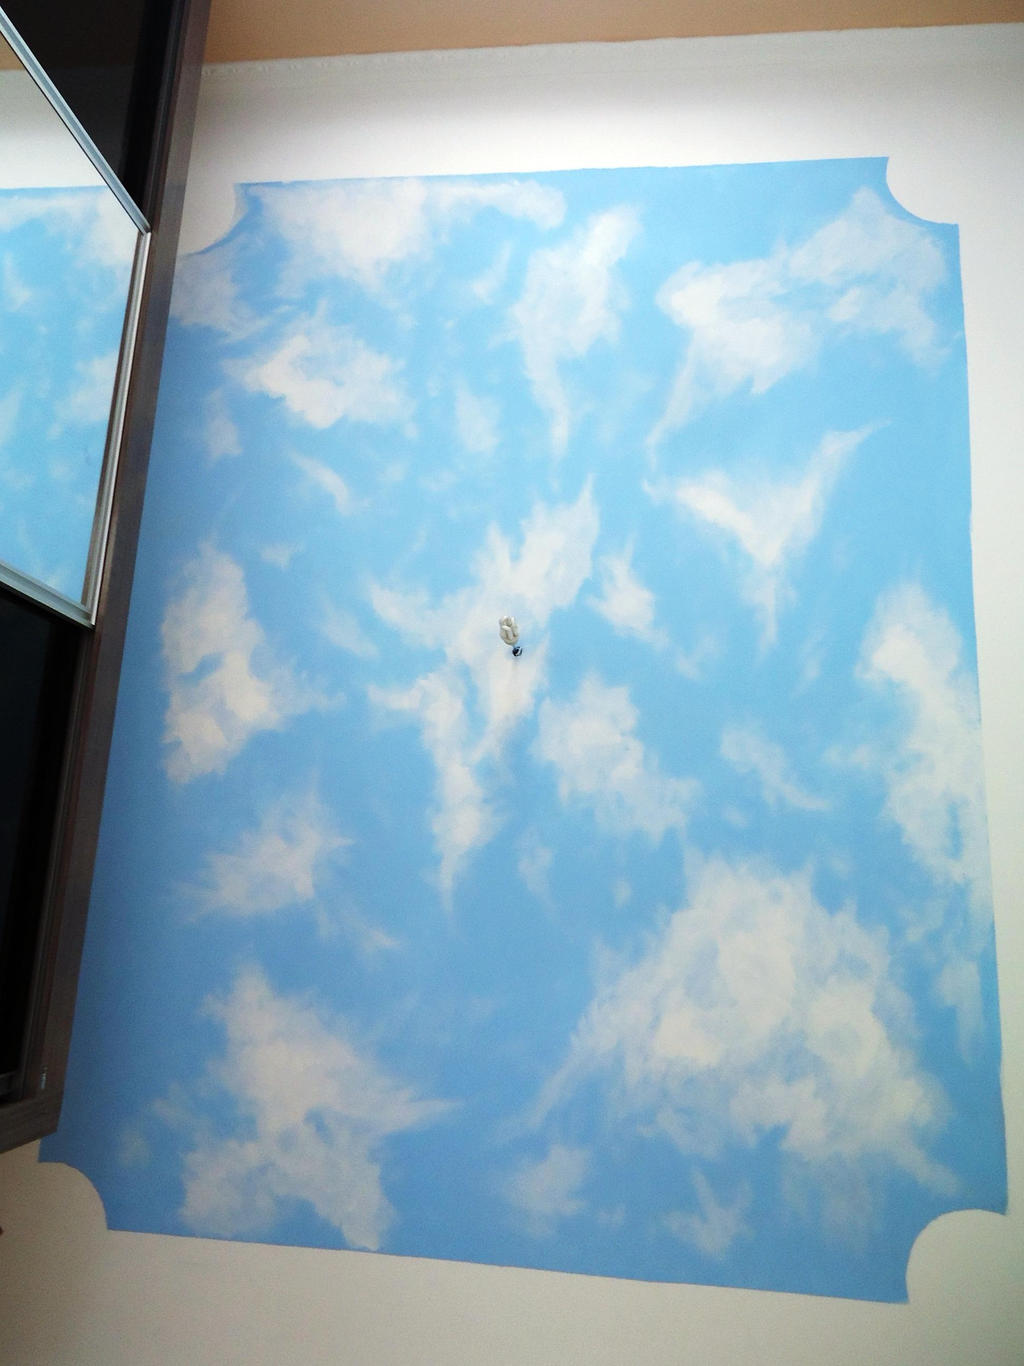 Clouds on the ceiling by marcelogodoy on deviantart for How to make clouds on ceiling